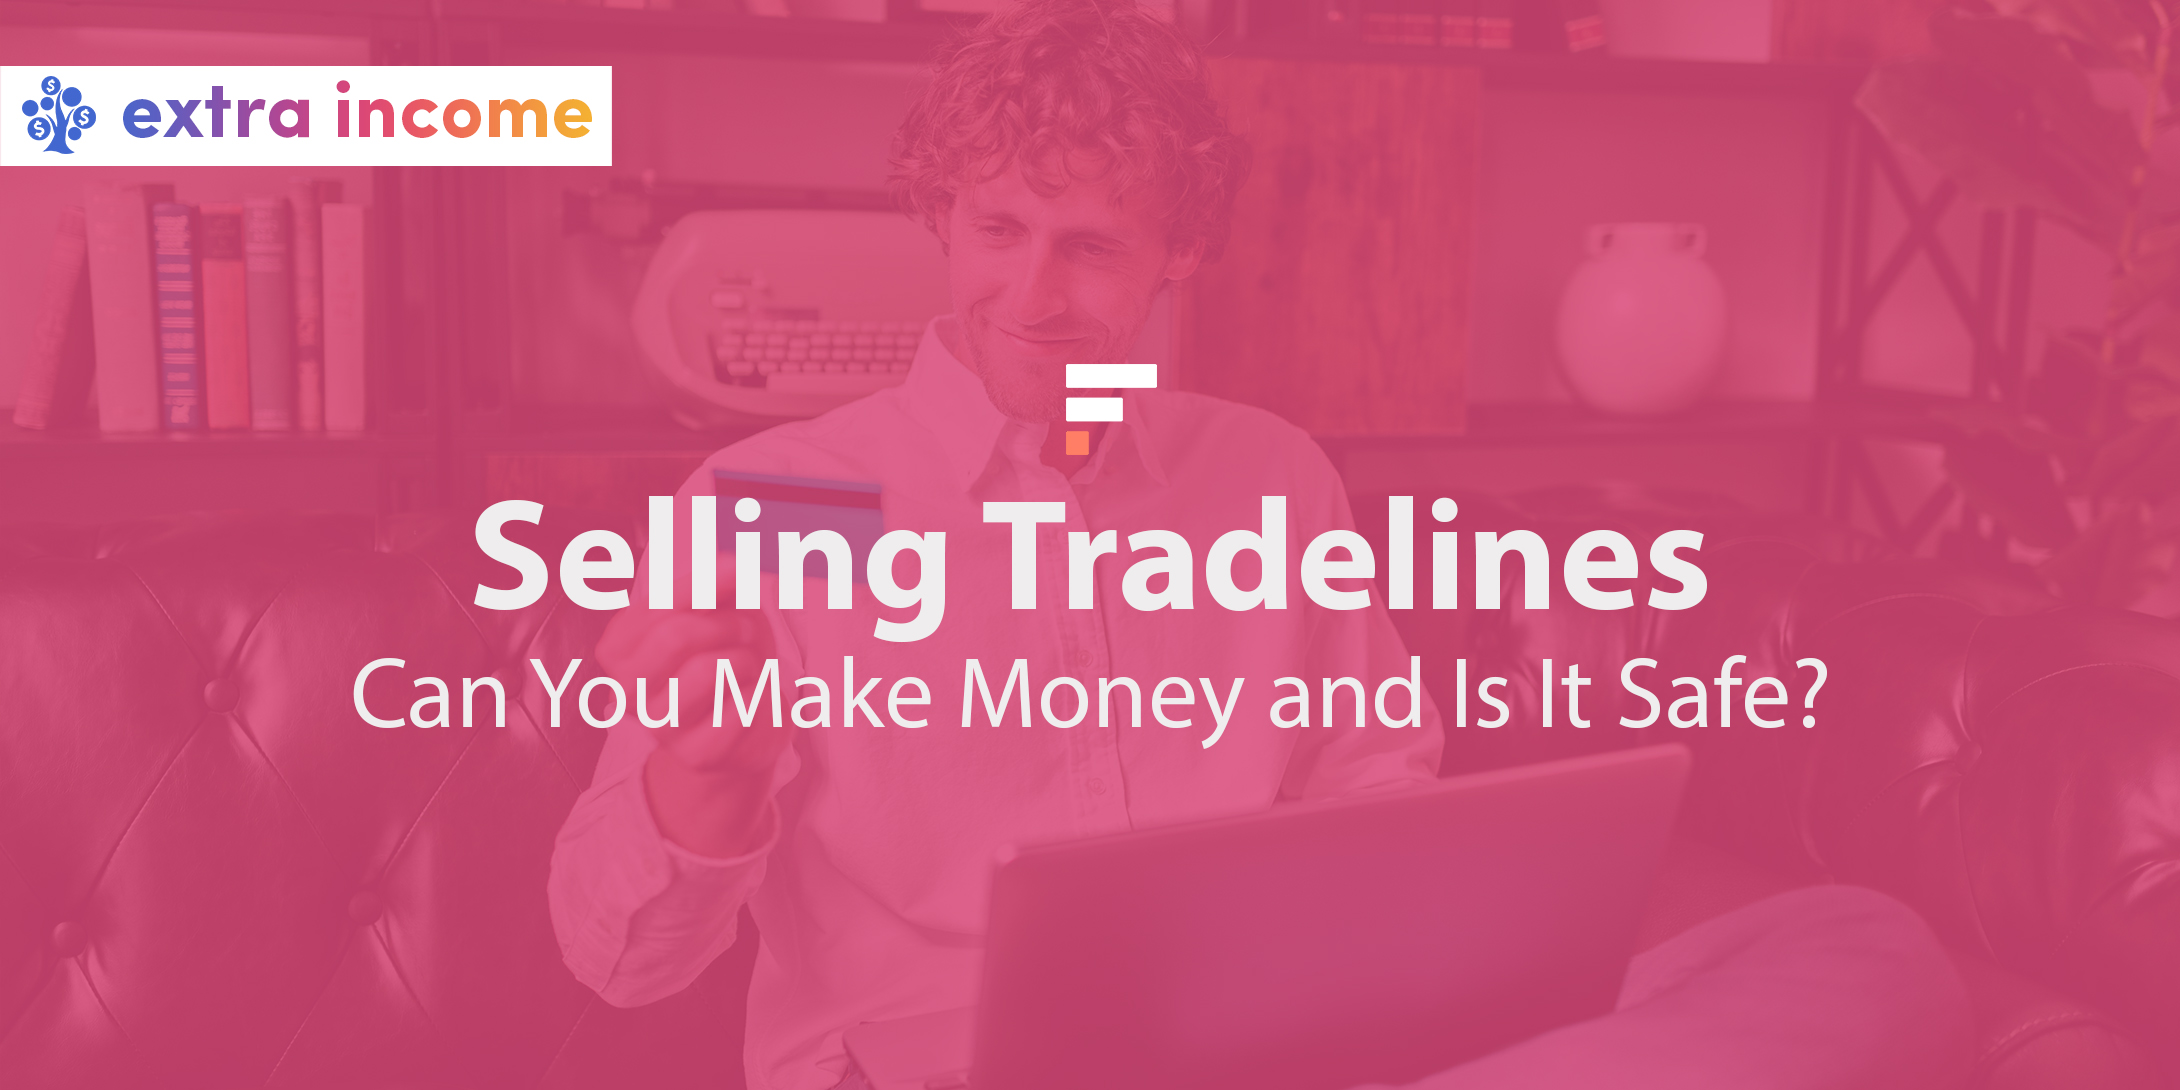 Selling tradelines